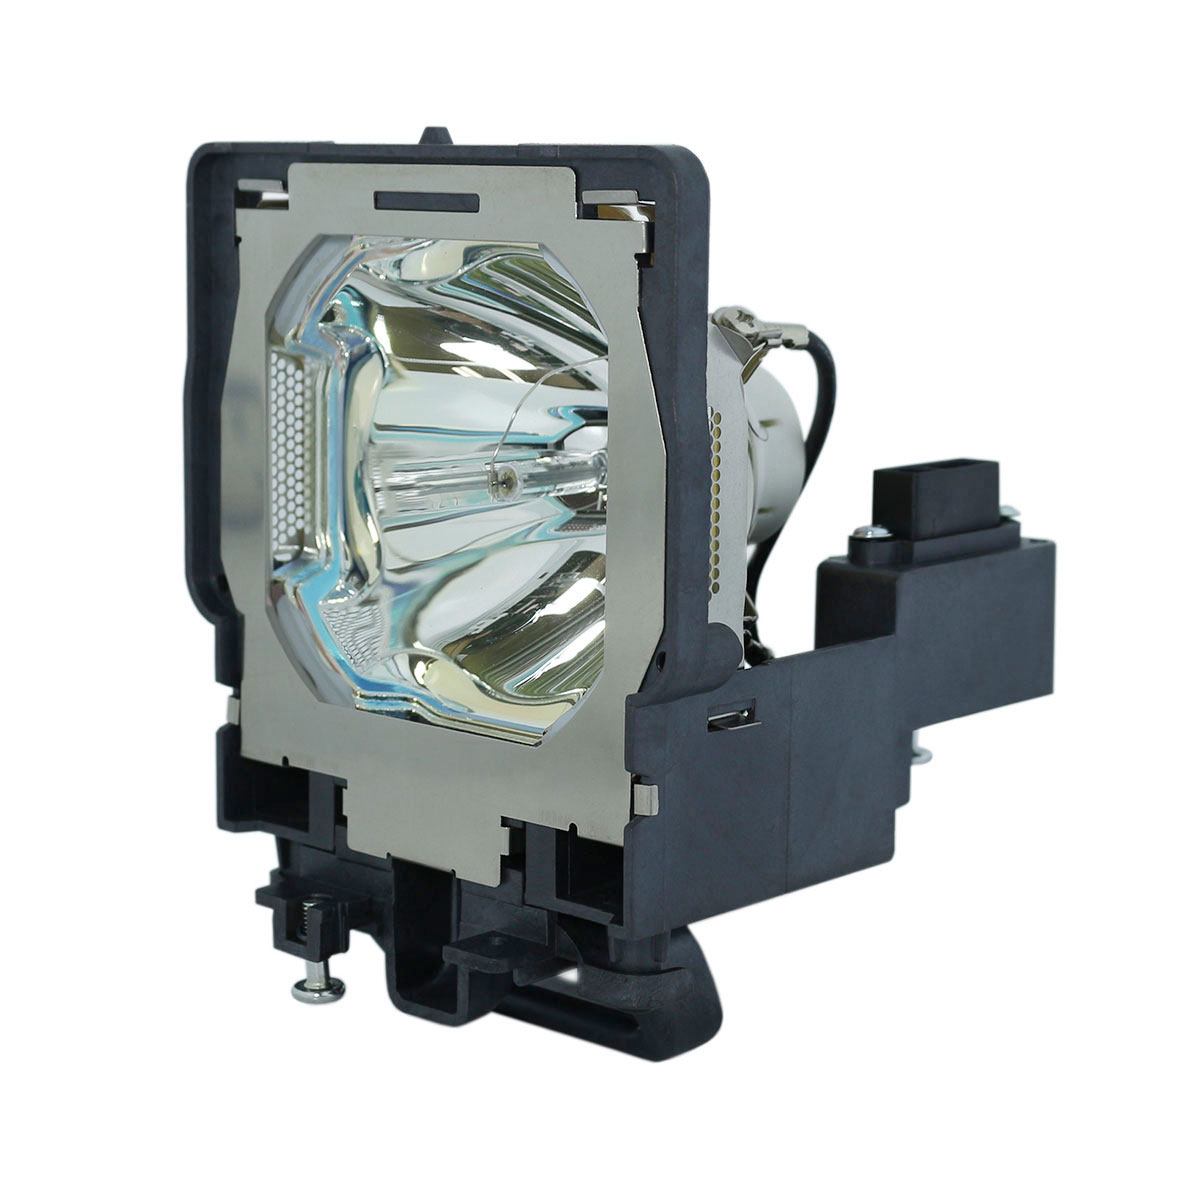 Ushio Original Lamp Housing For Sanyo PLC-XF47W / PLCXF47W Projector DLP LCD